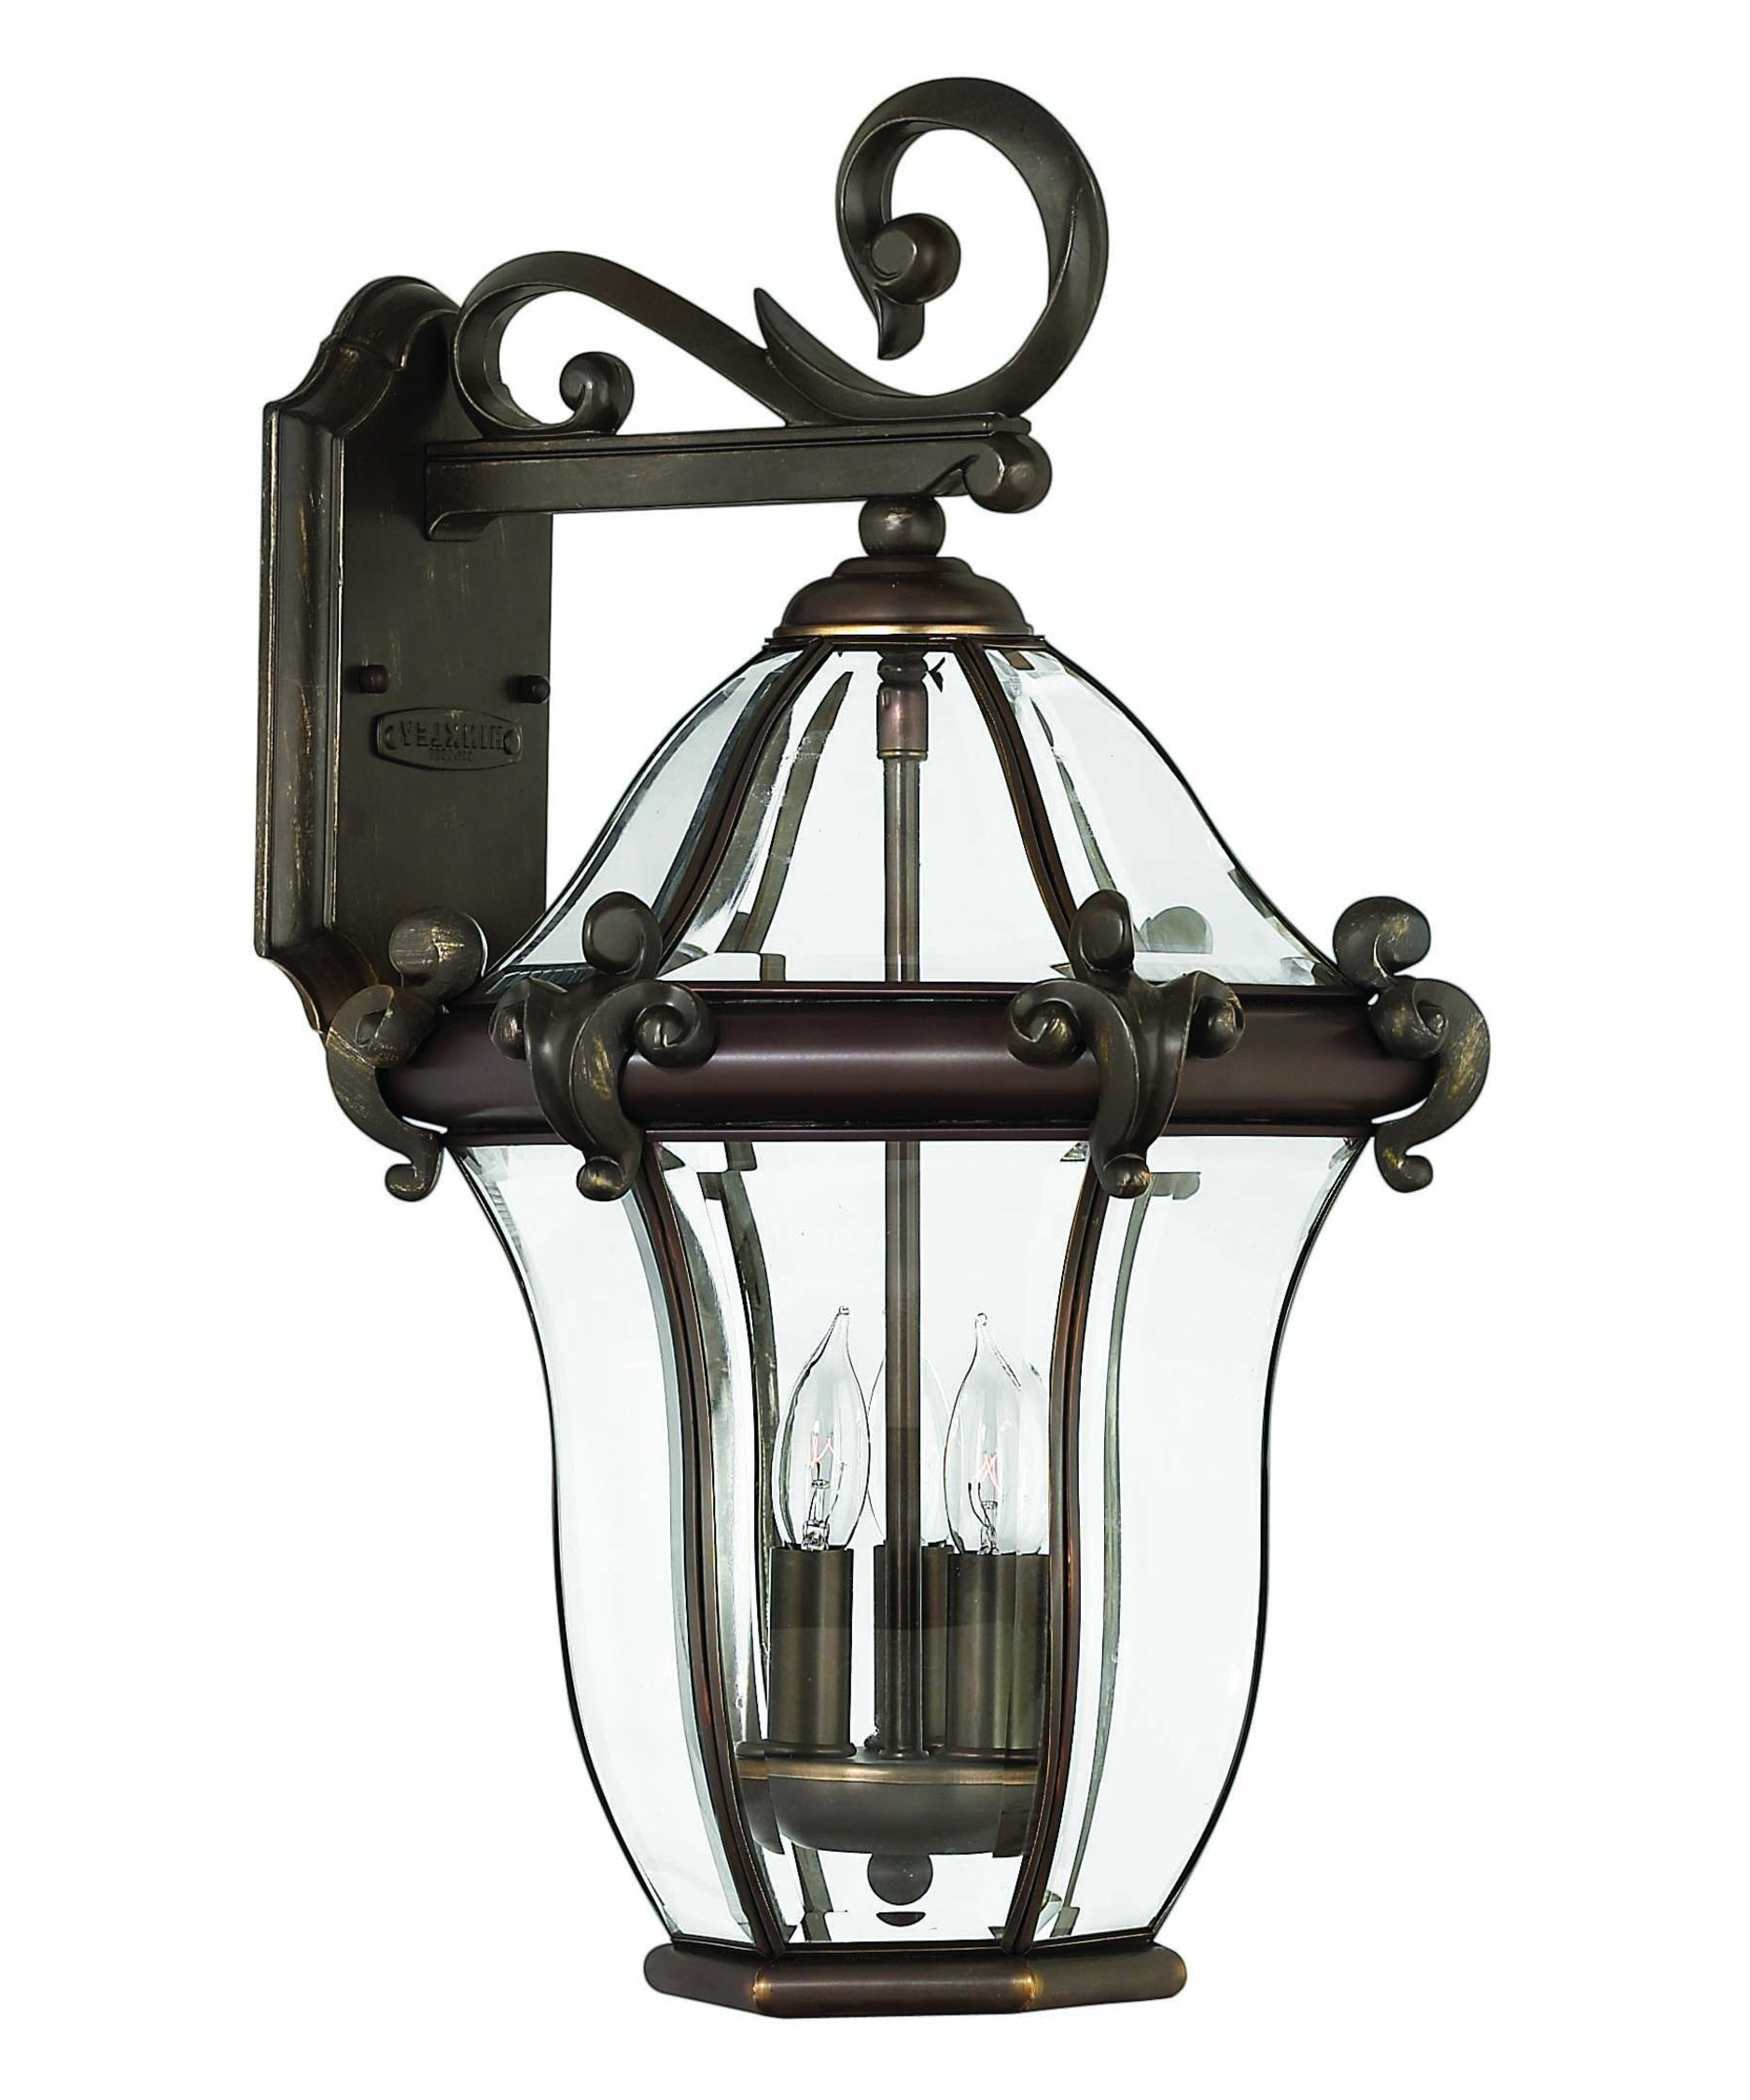 Hinkley Lighting 2444 San Clemente 12 Inch Wide 3 Light Outdoor Wall Throughout Most Recent Outdoor Wall Light Glass (View 5 of 20)